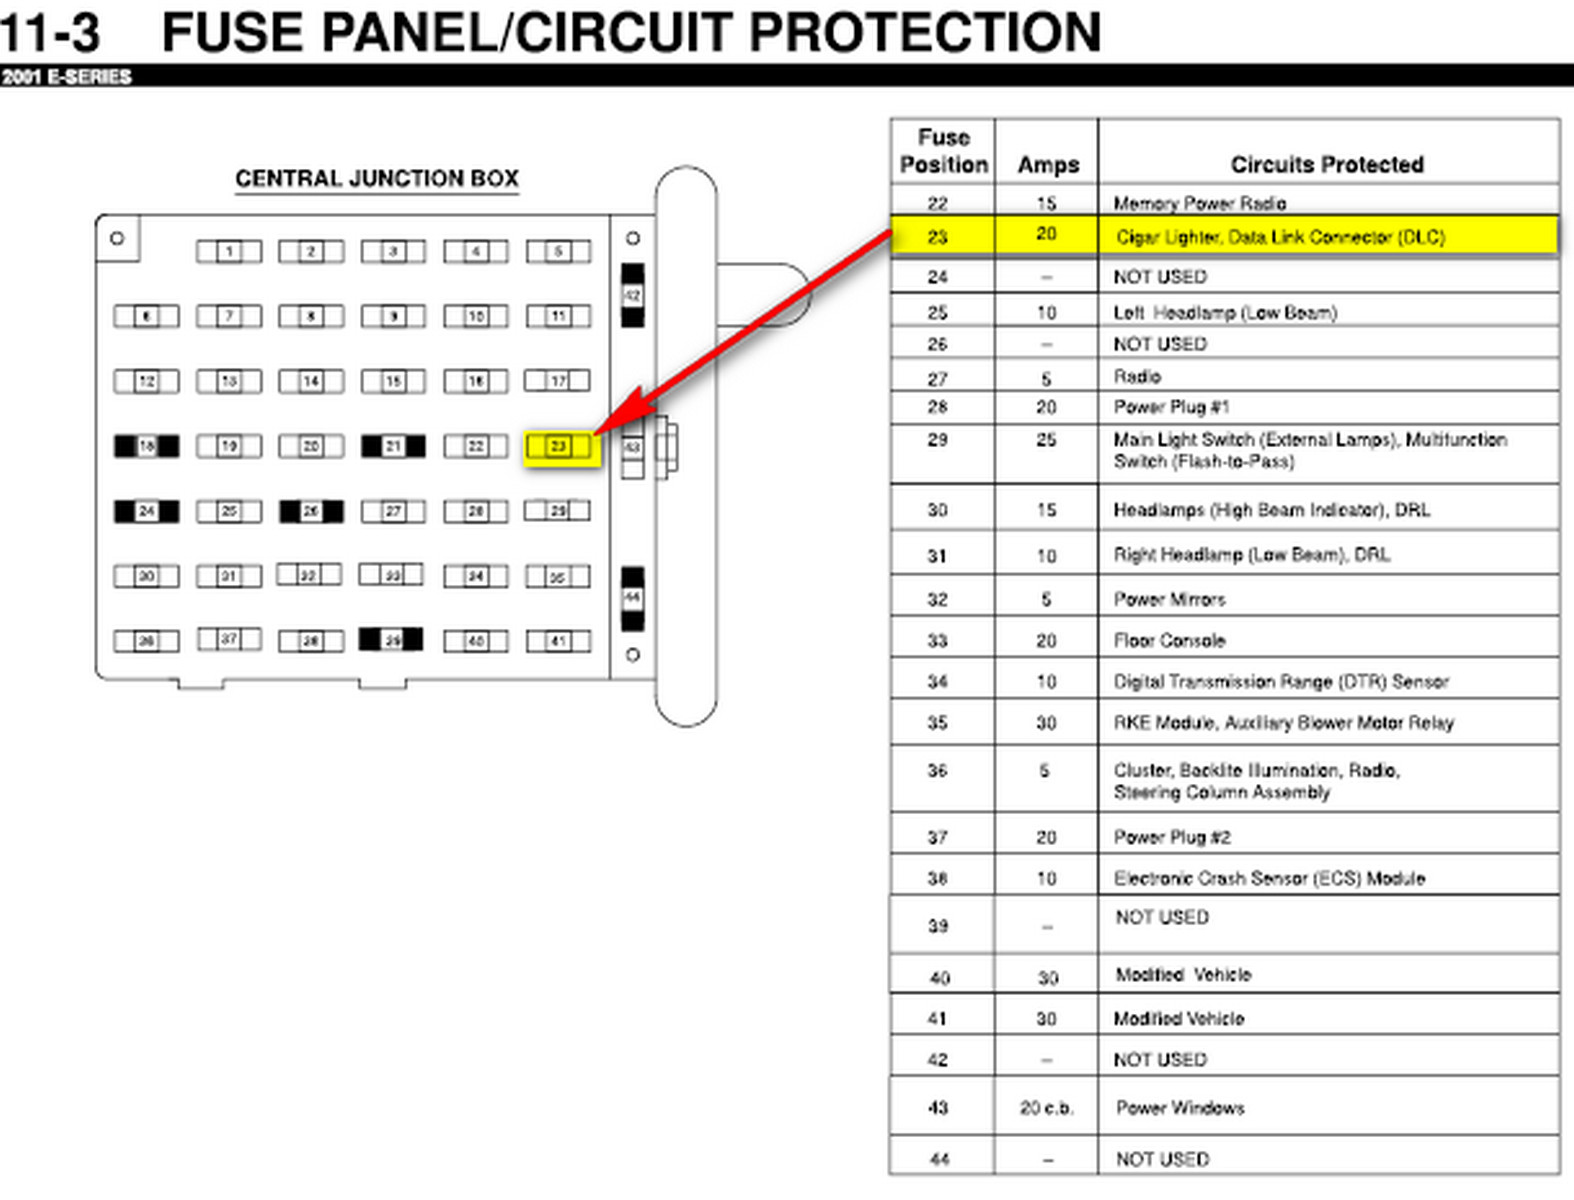 hight resolution of 2003 e350 fuse diagram wiring diagram detailed 2007 ford fusion fuse box diagram 2003 e350 fuse